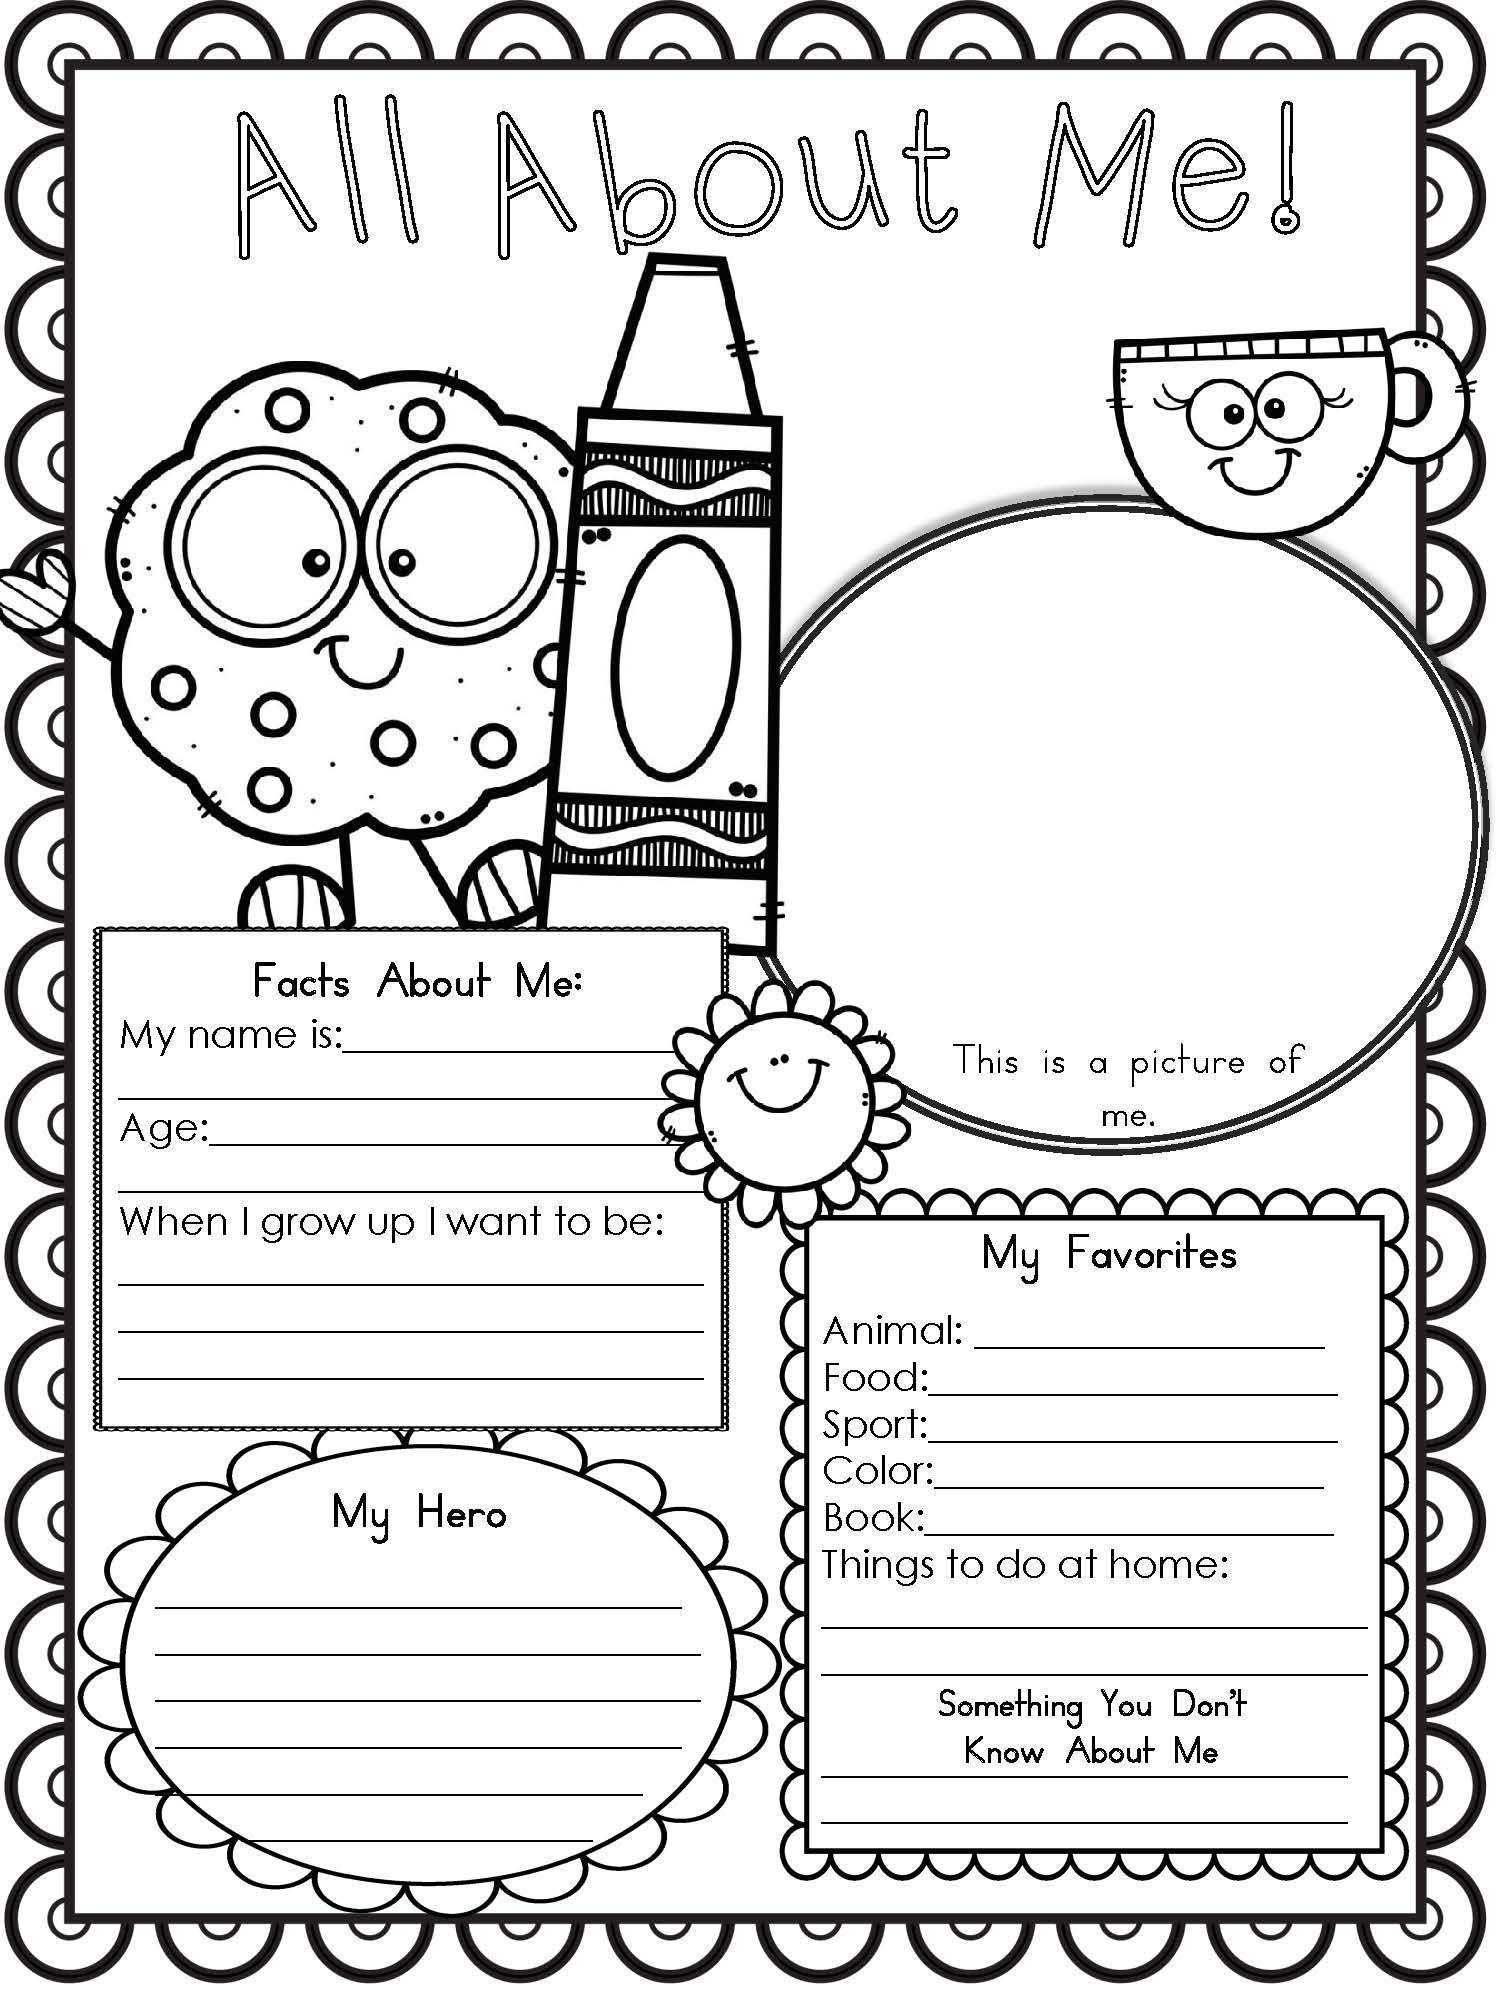 All About Me Worksheet Preschool Free Printable All About Me Worksheet Modern Homeschool Family